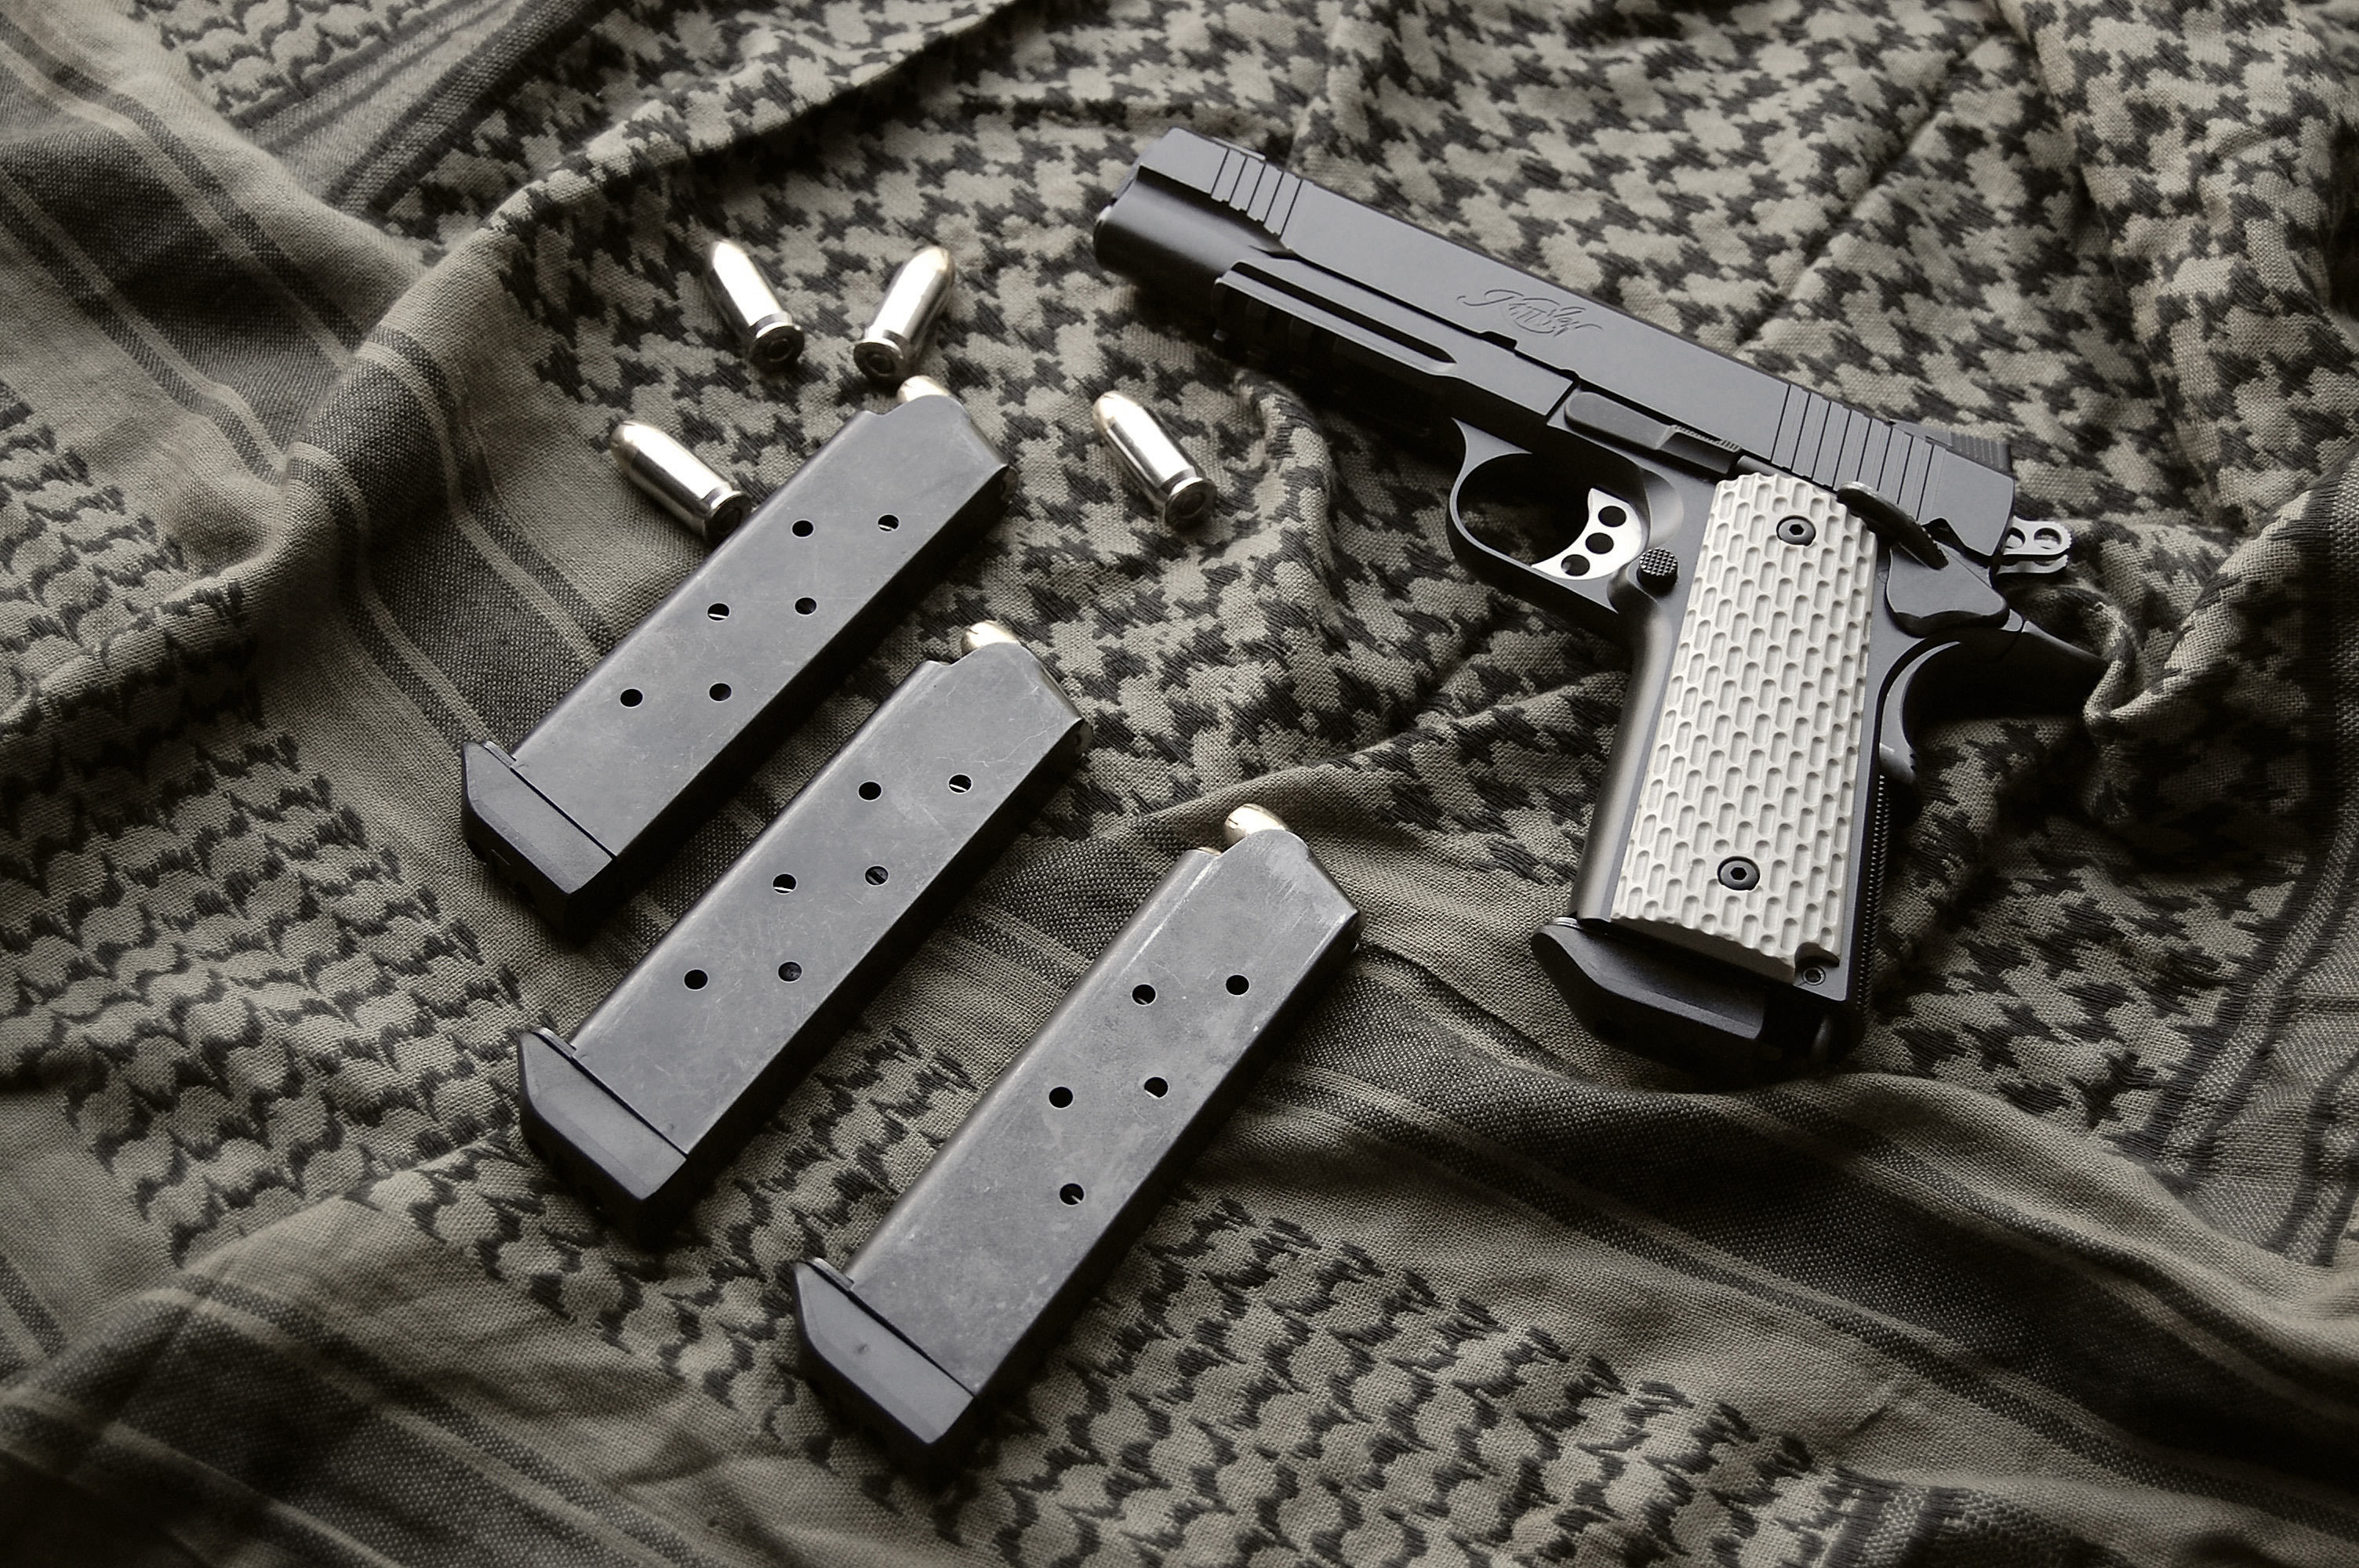 Kimber 1911 Pistol HD Wallpaper Background Image 3008x2000 3008x2000